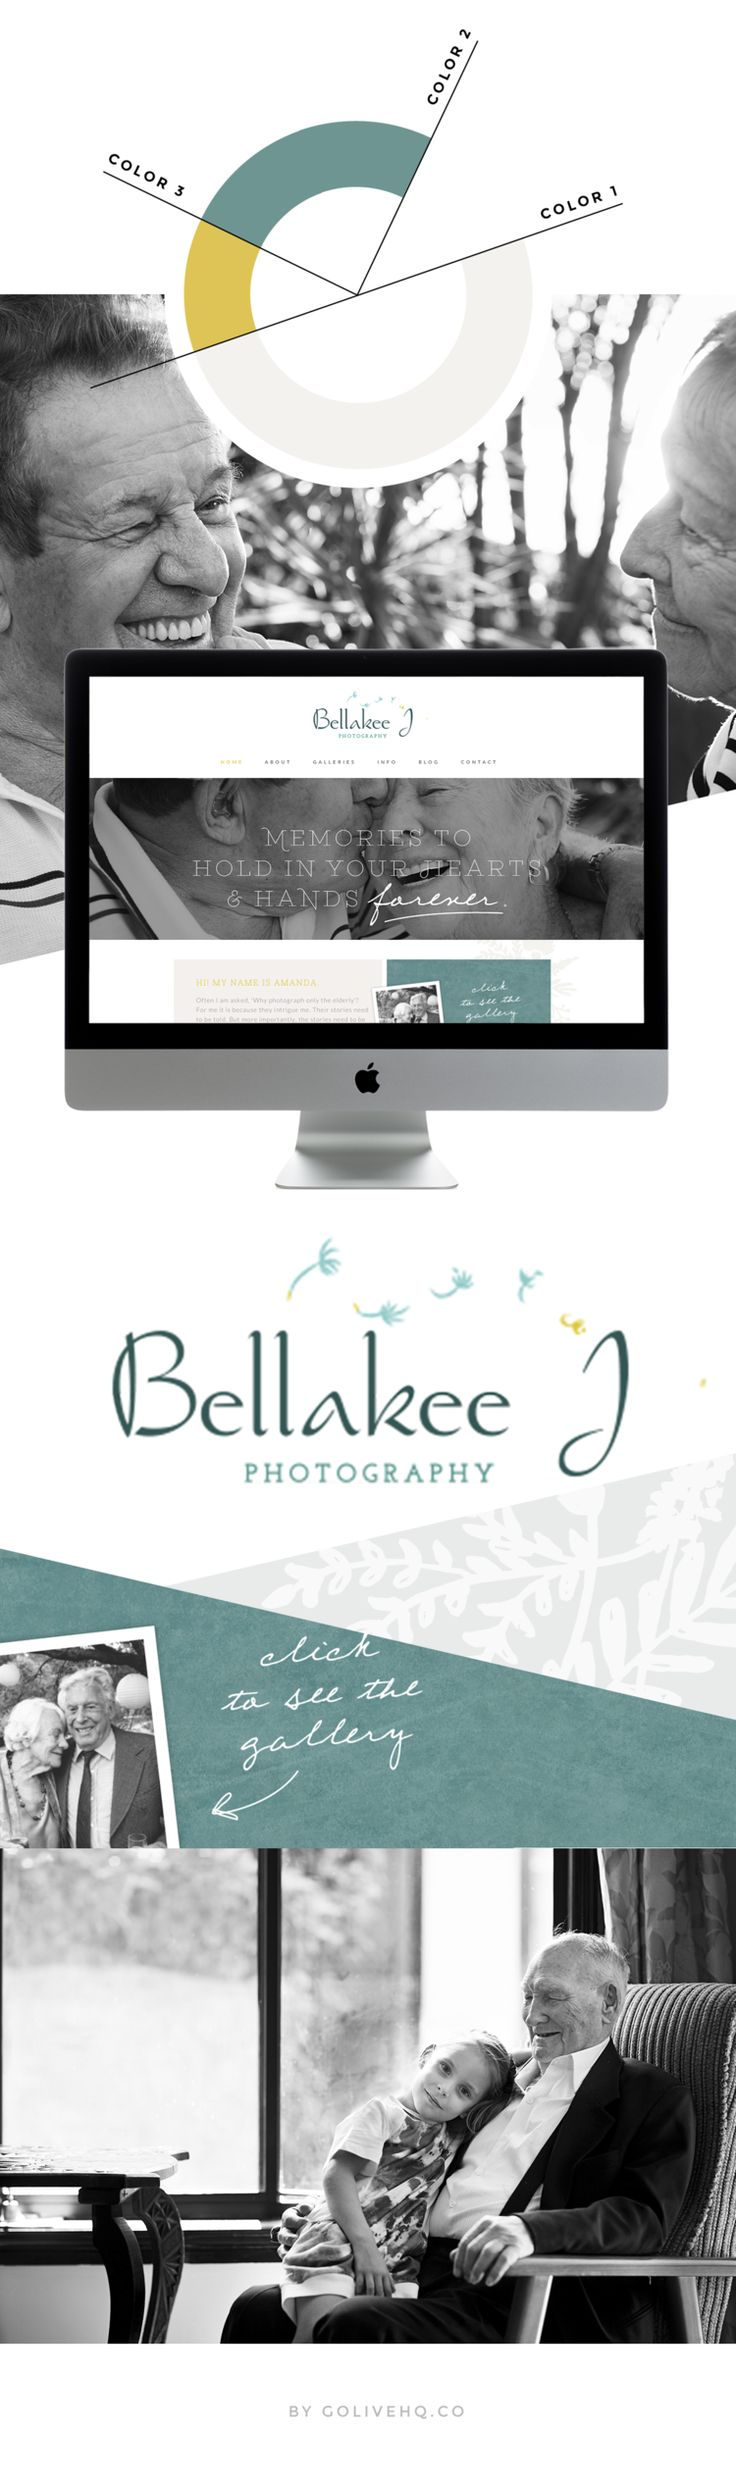 BELLAKEE J PHOTOGRAPHY IS LIVE — GO LIVE HQ